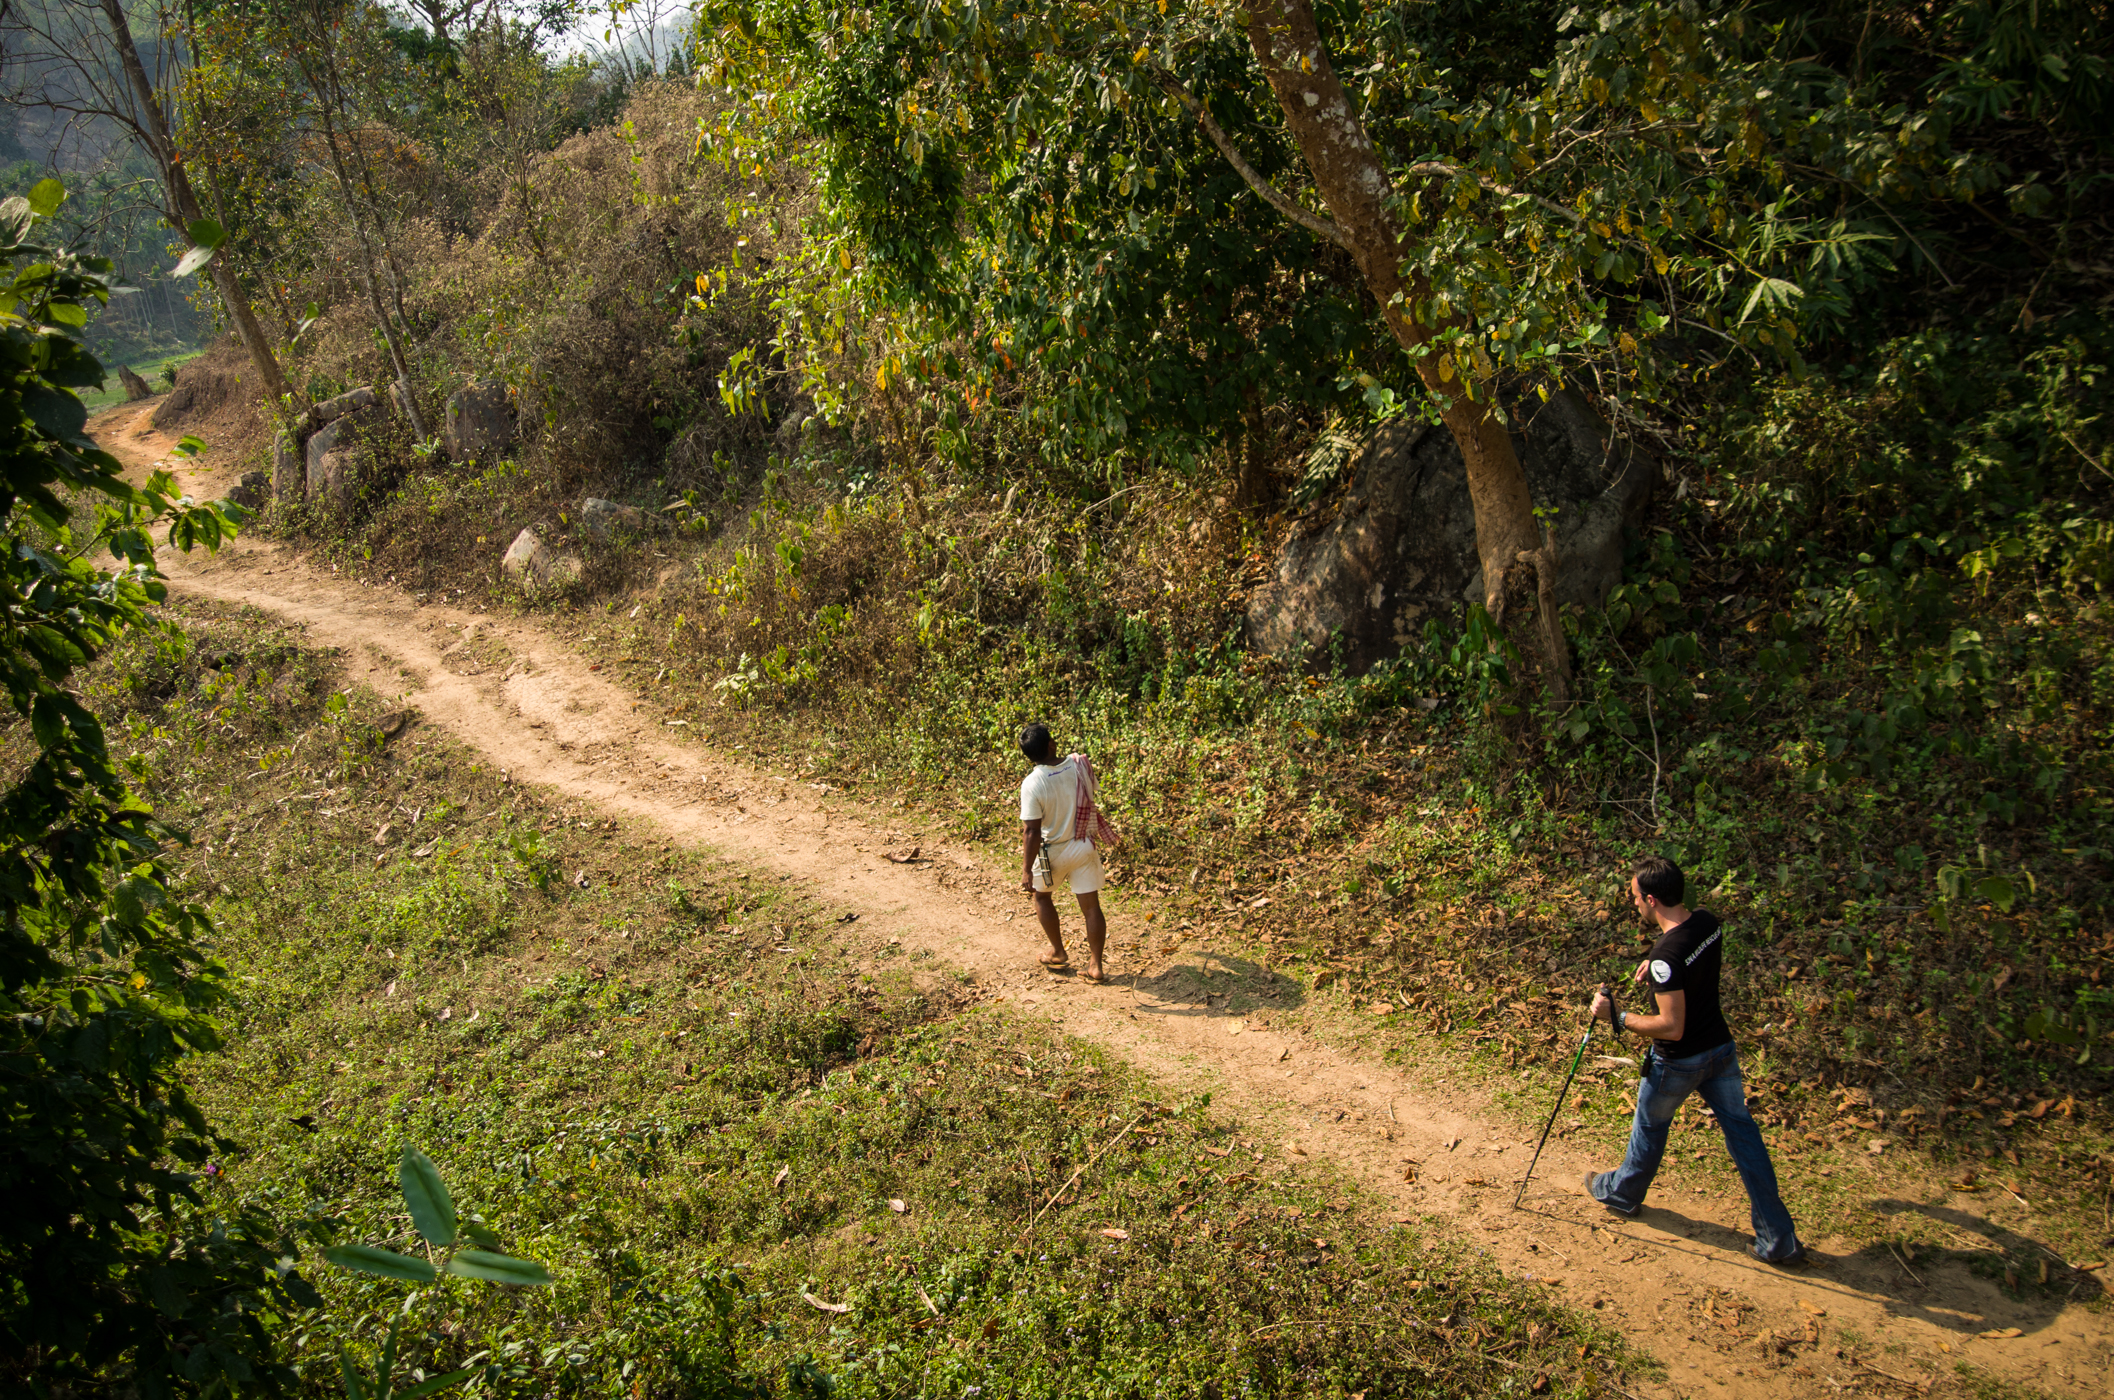 Balram Rasha (in white), a local tribesman from Zaramukhuriya, leads Florian through new land in Chandubi, Assam.